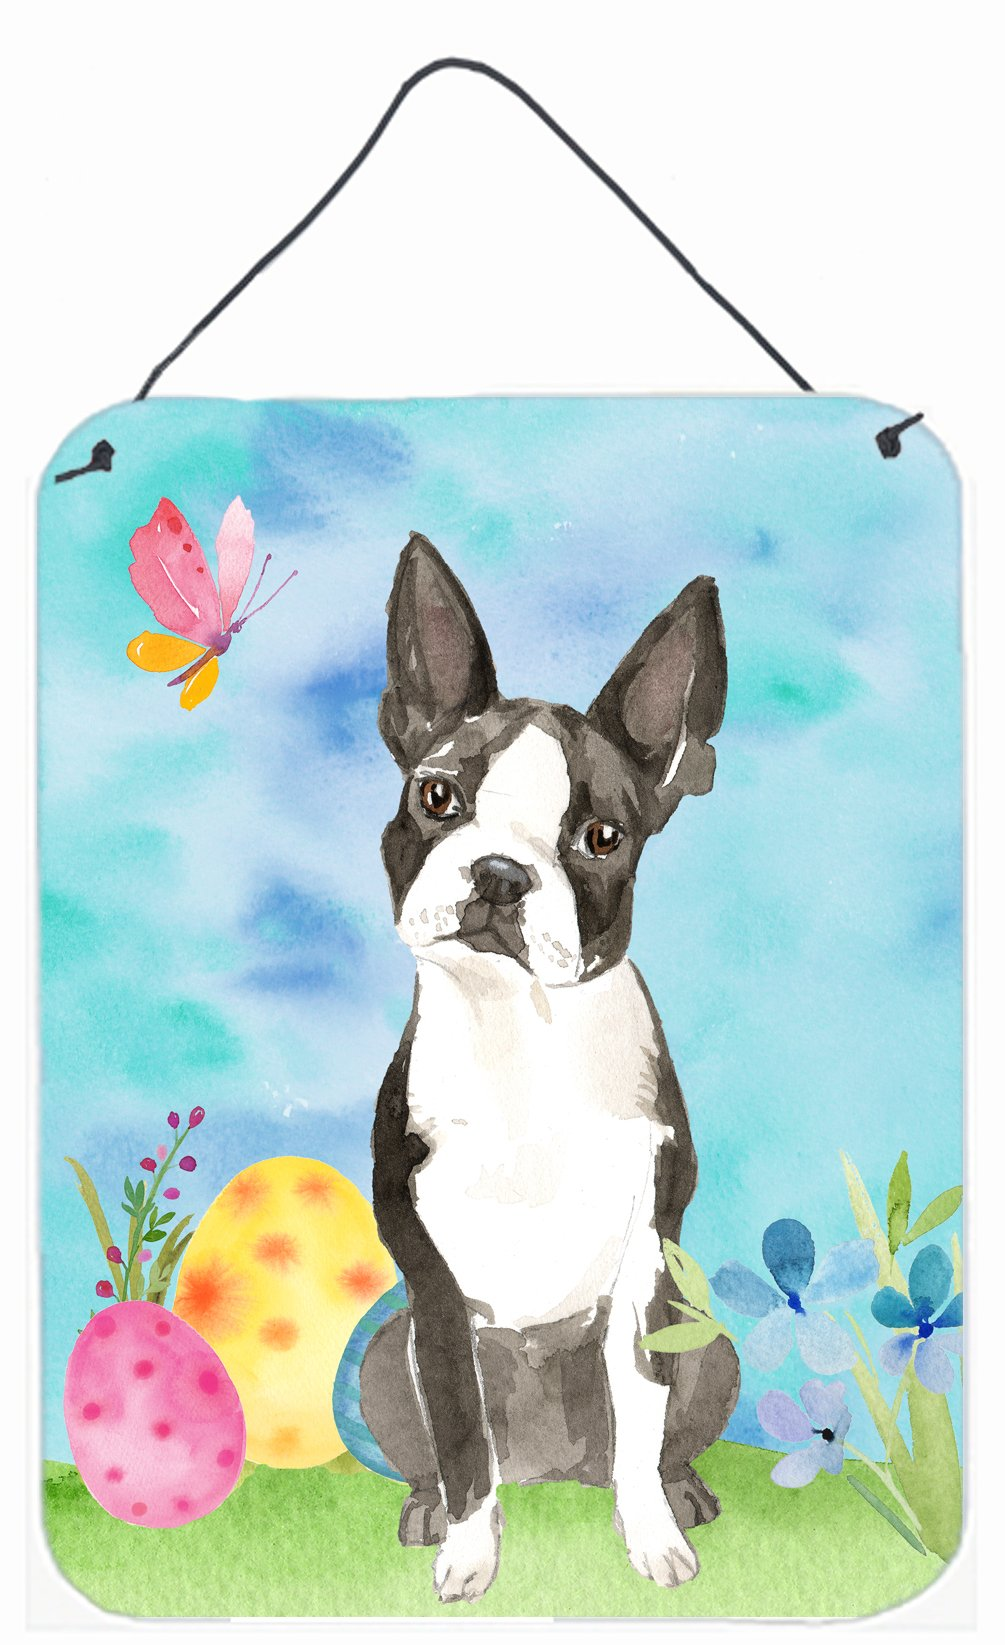 Easter Eggs Boston Terrier Wall or Door Hanging Prints CK1923DS1216 by Caroline's Treasures